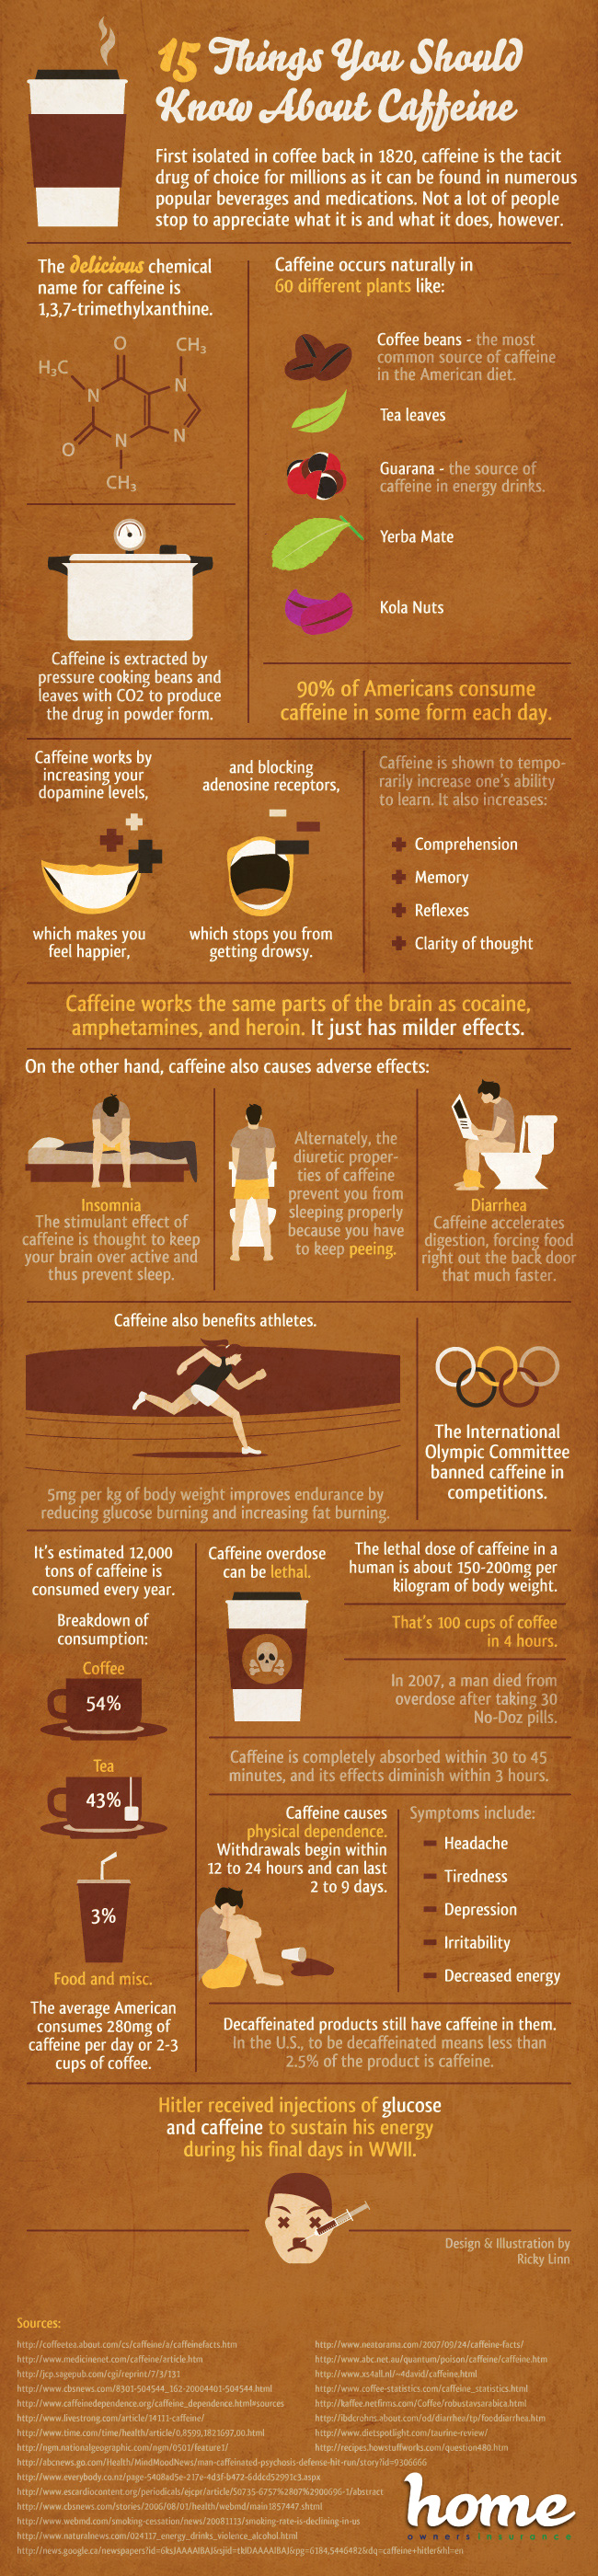 Here's What You Didn't Know About Caffeine - Infographic